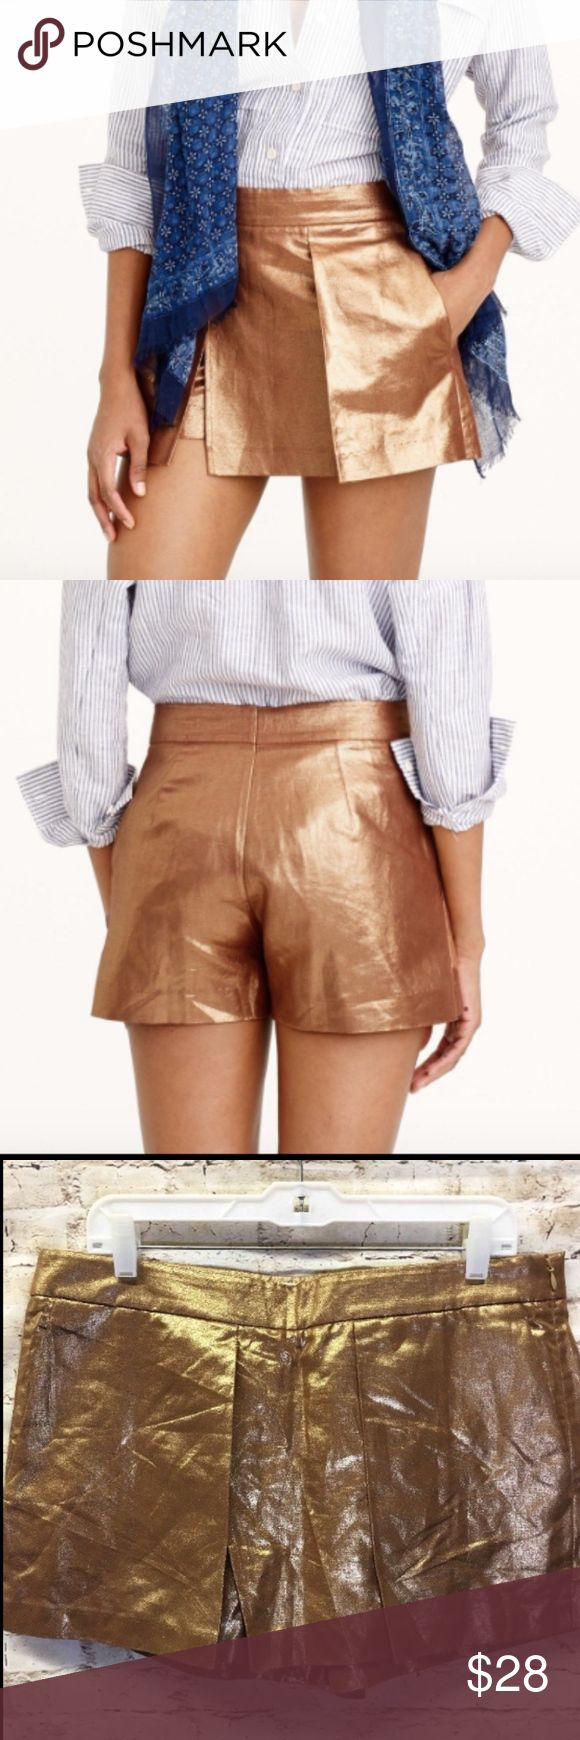 "J. Crew Metallic Gold Crossover Shorts Skort Sz 12 J.CREW WOMENS METALLIC LINEN CROSSOVER SHORTS SKORT GOLD TOBACCO   Size 12 Inseam: 3"" Length top to bottom: 13"" Length across waist: 18"" 2 front pockets!  Zipper on left side! In excellent condition, no tears or rips! Comes from smoke free home! J. Crew Shorts Skorts"